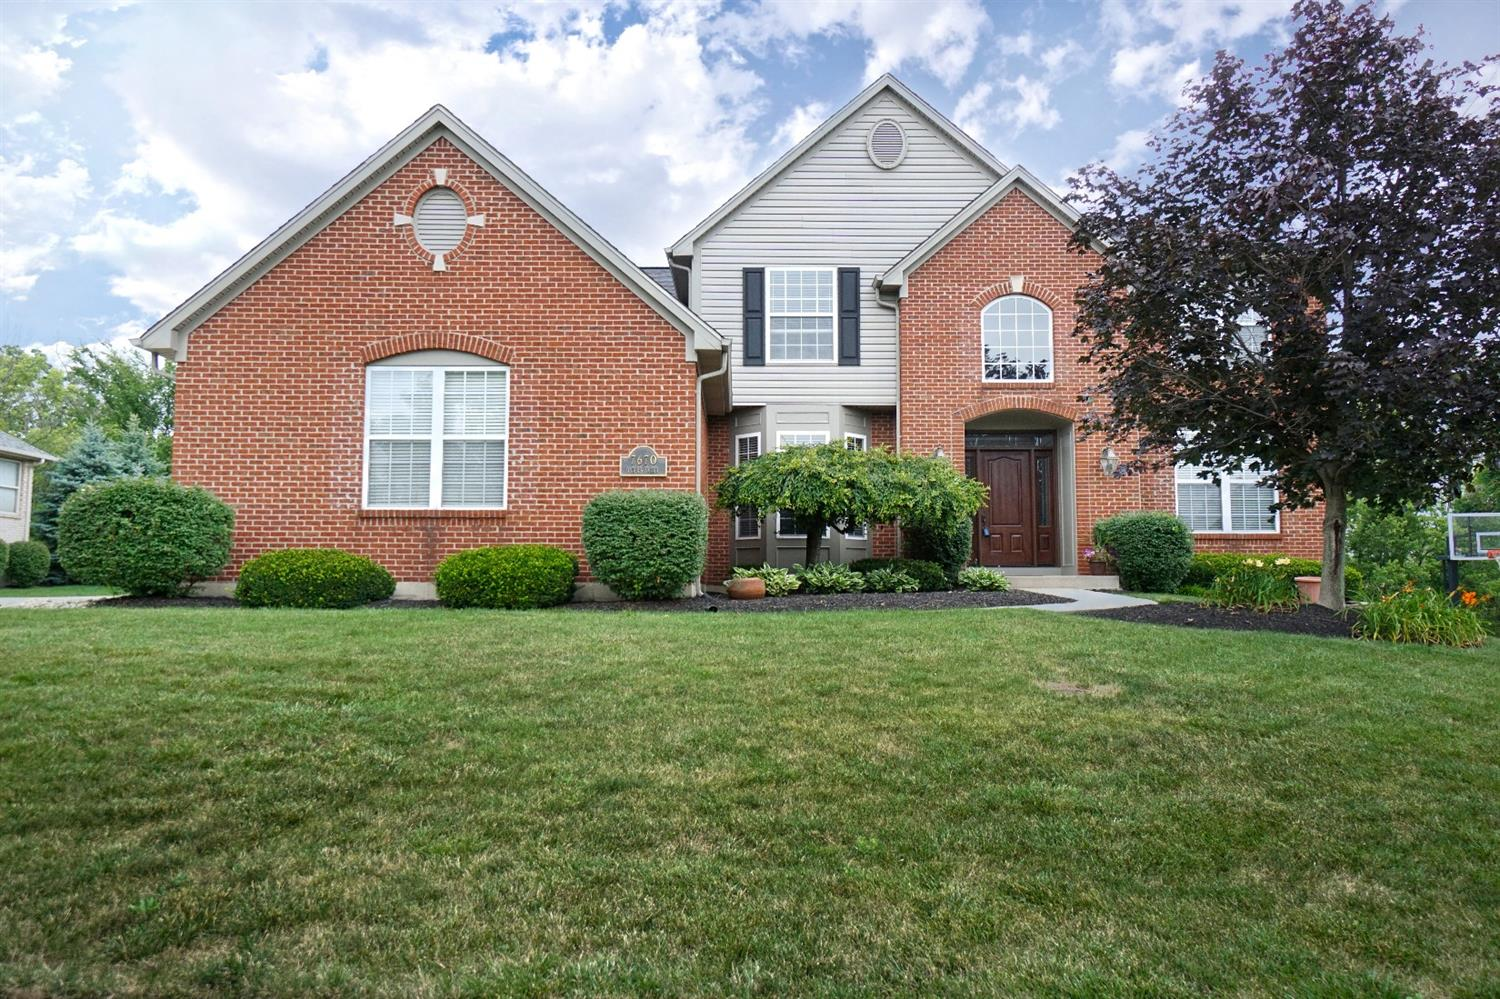 7670 Tylers Valley Drive, West Chester, OH 45069